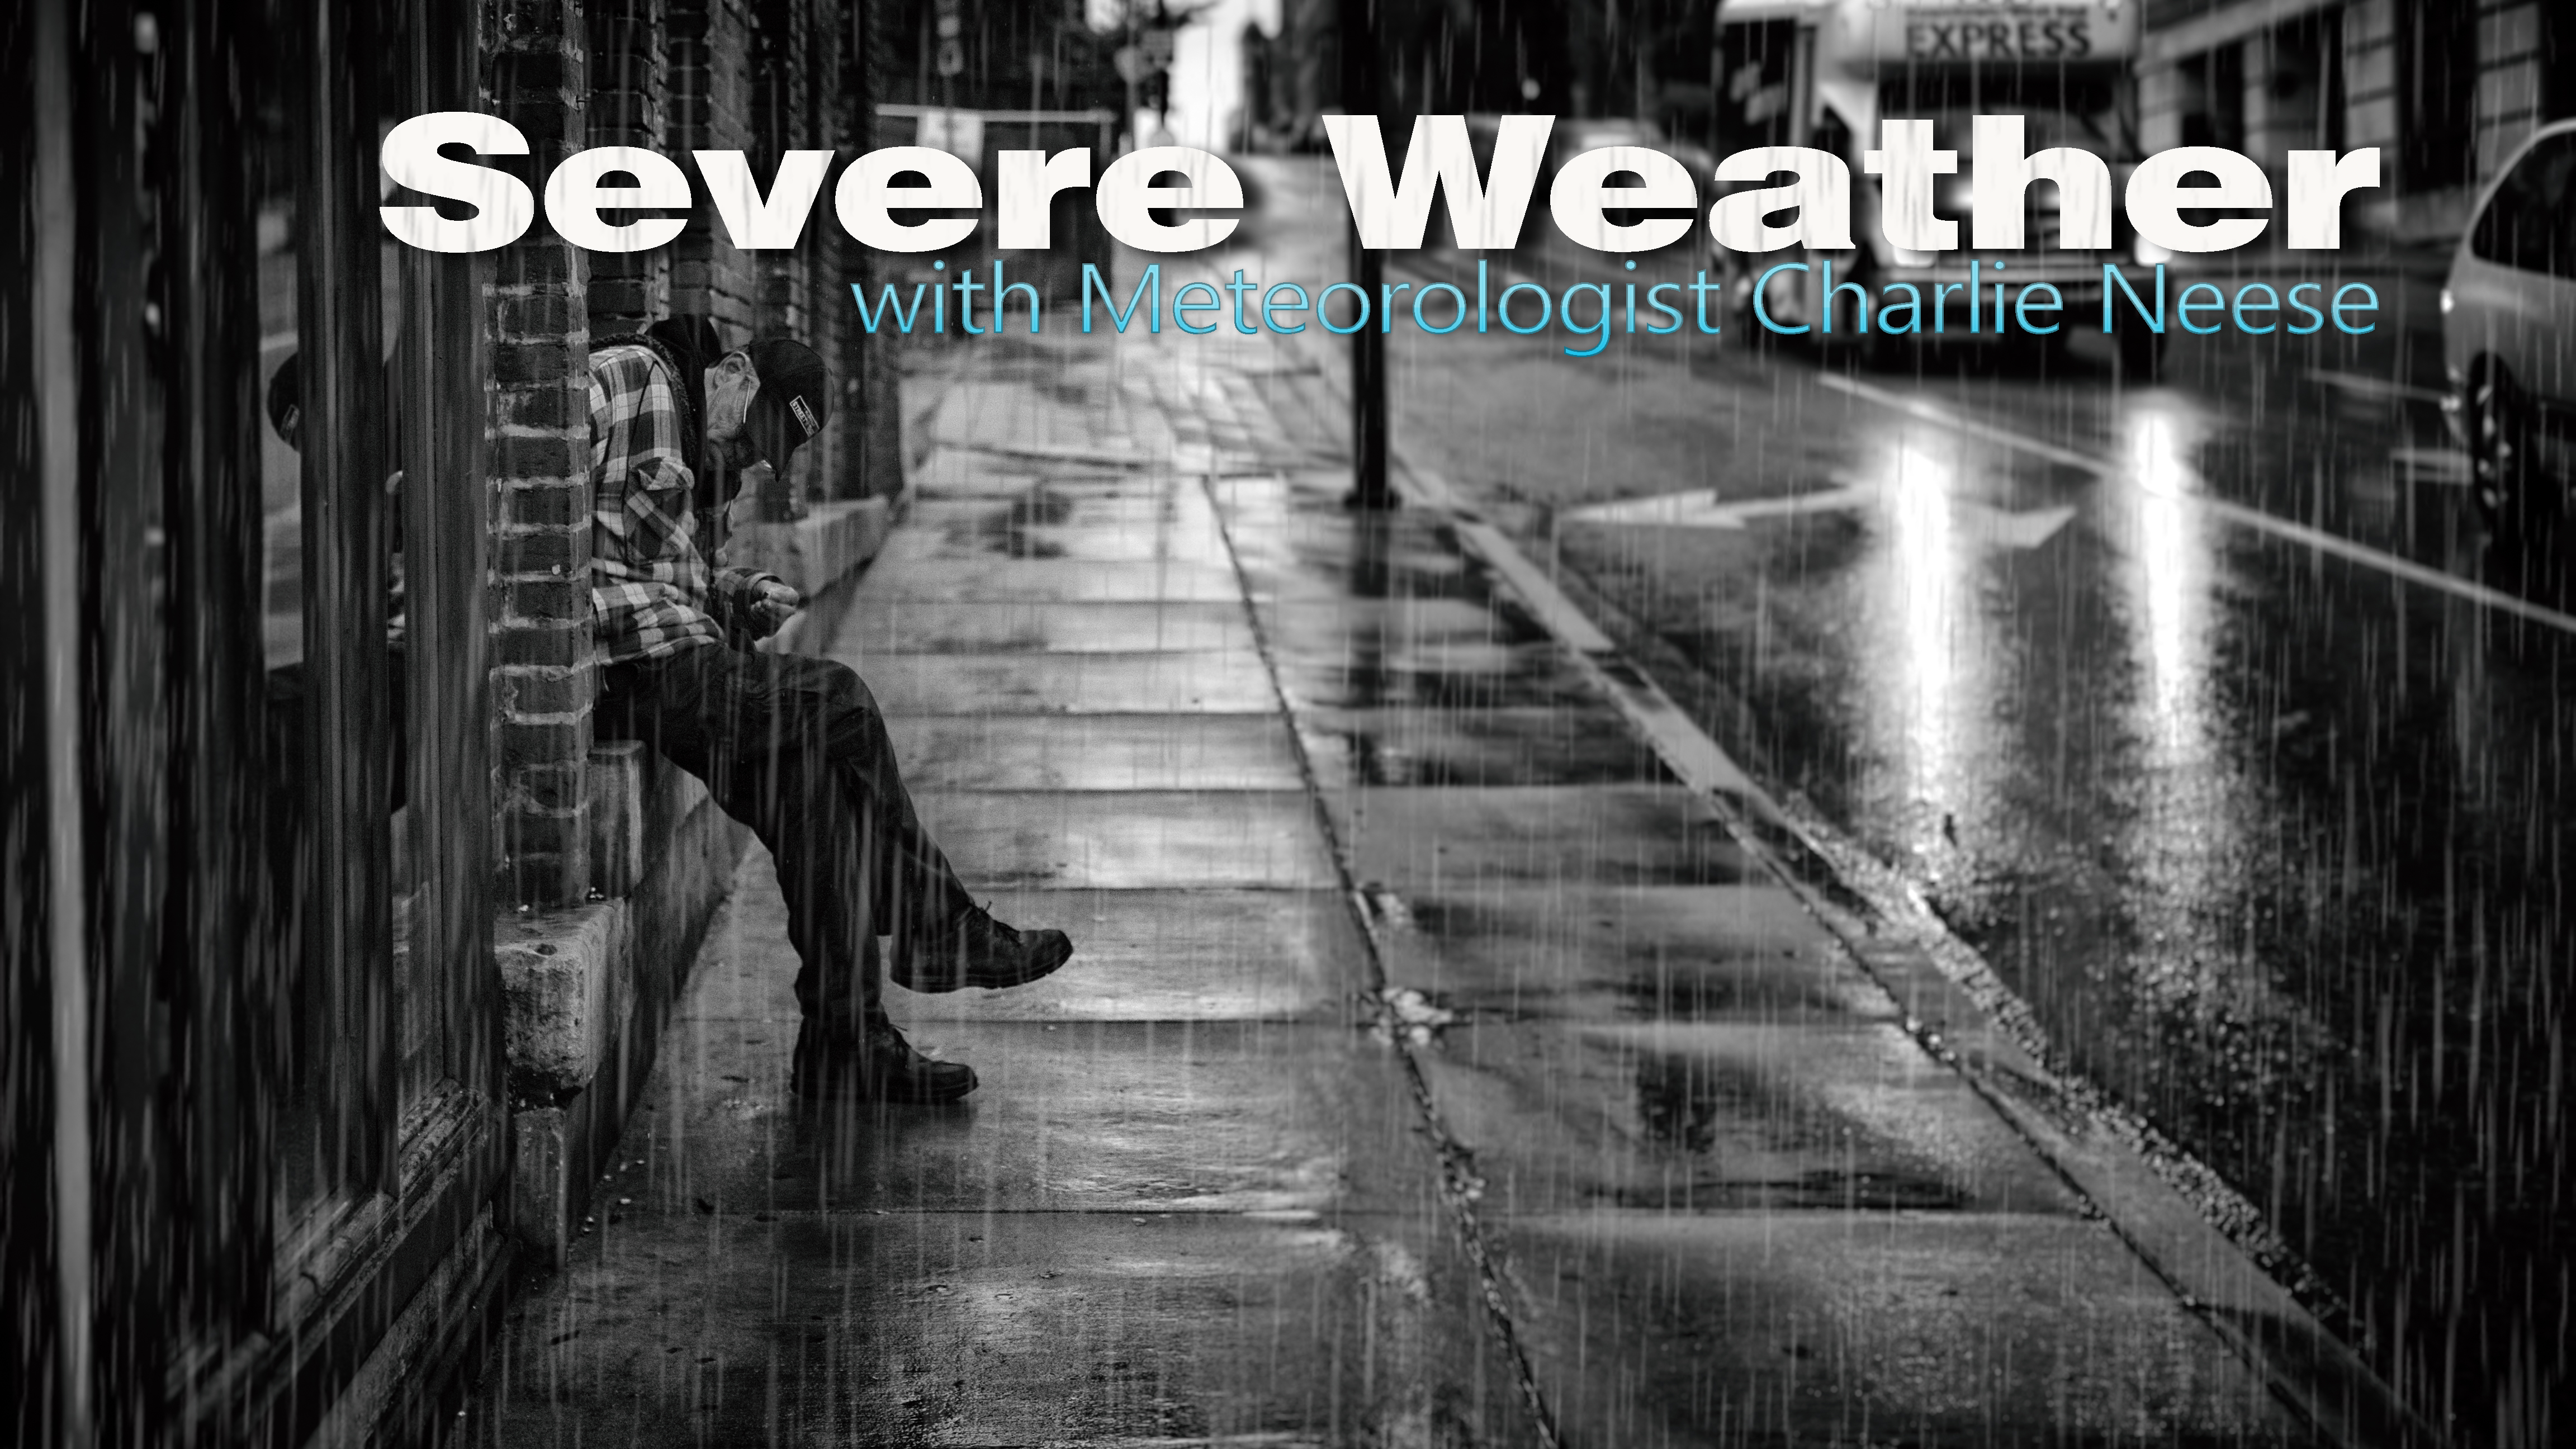 TONIGHT: Search Severe Weather Season - Charlie Neese to address